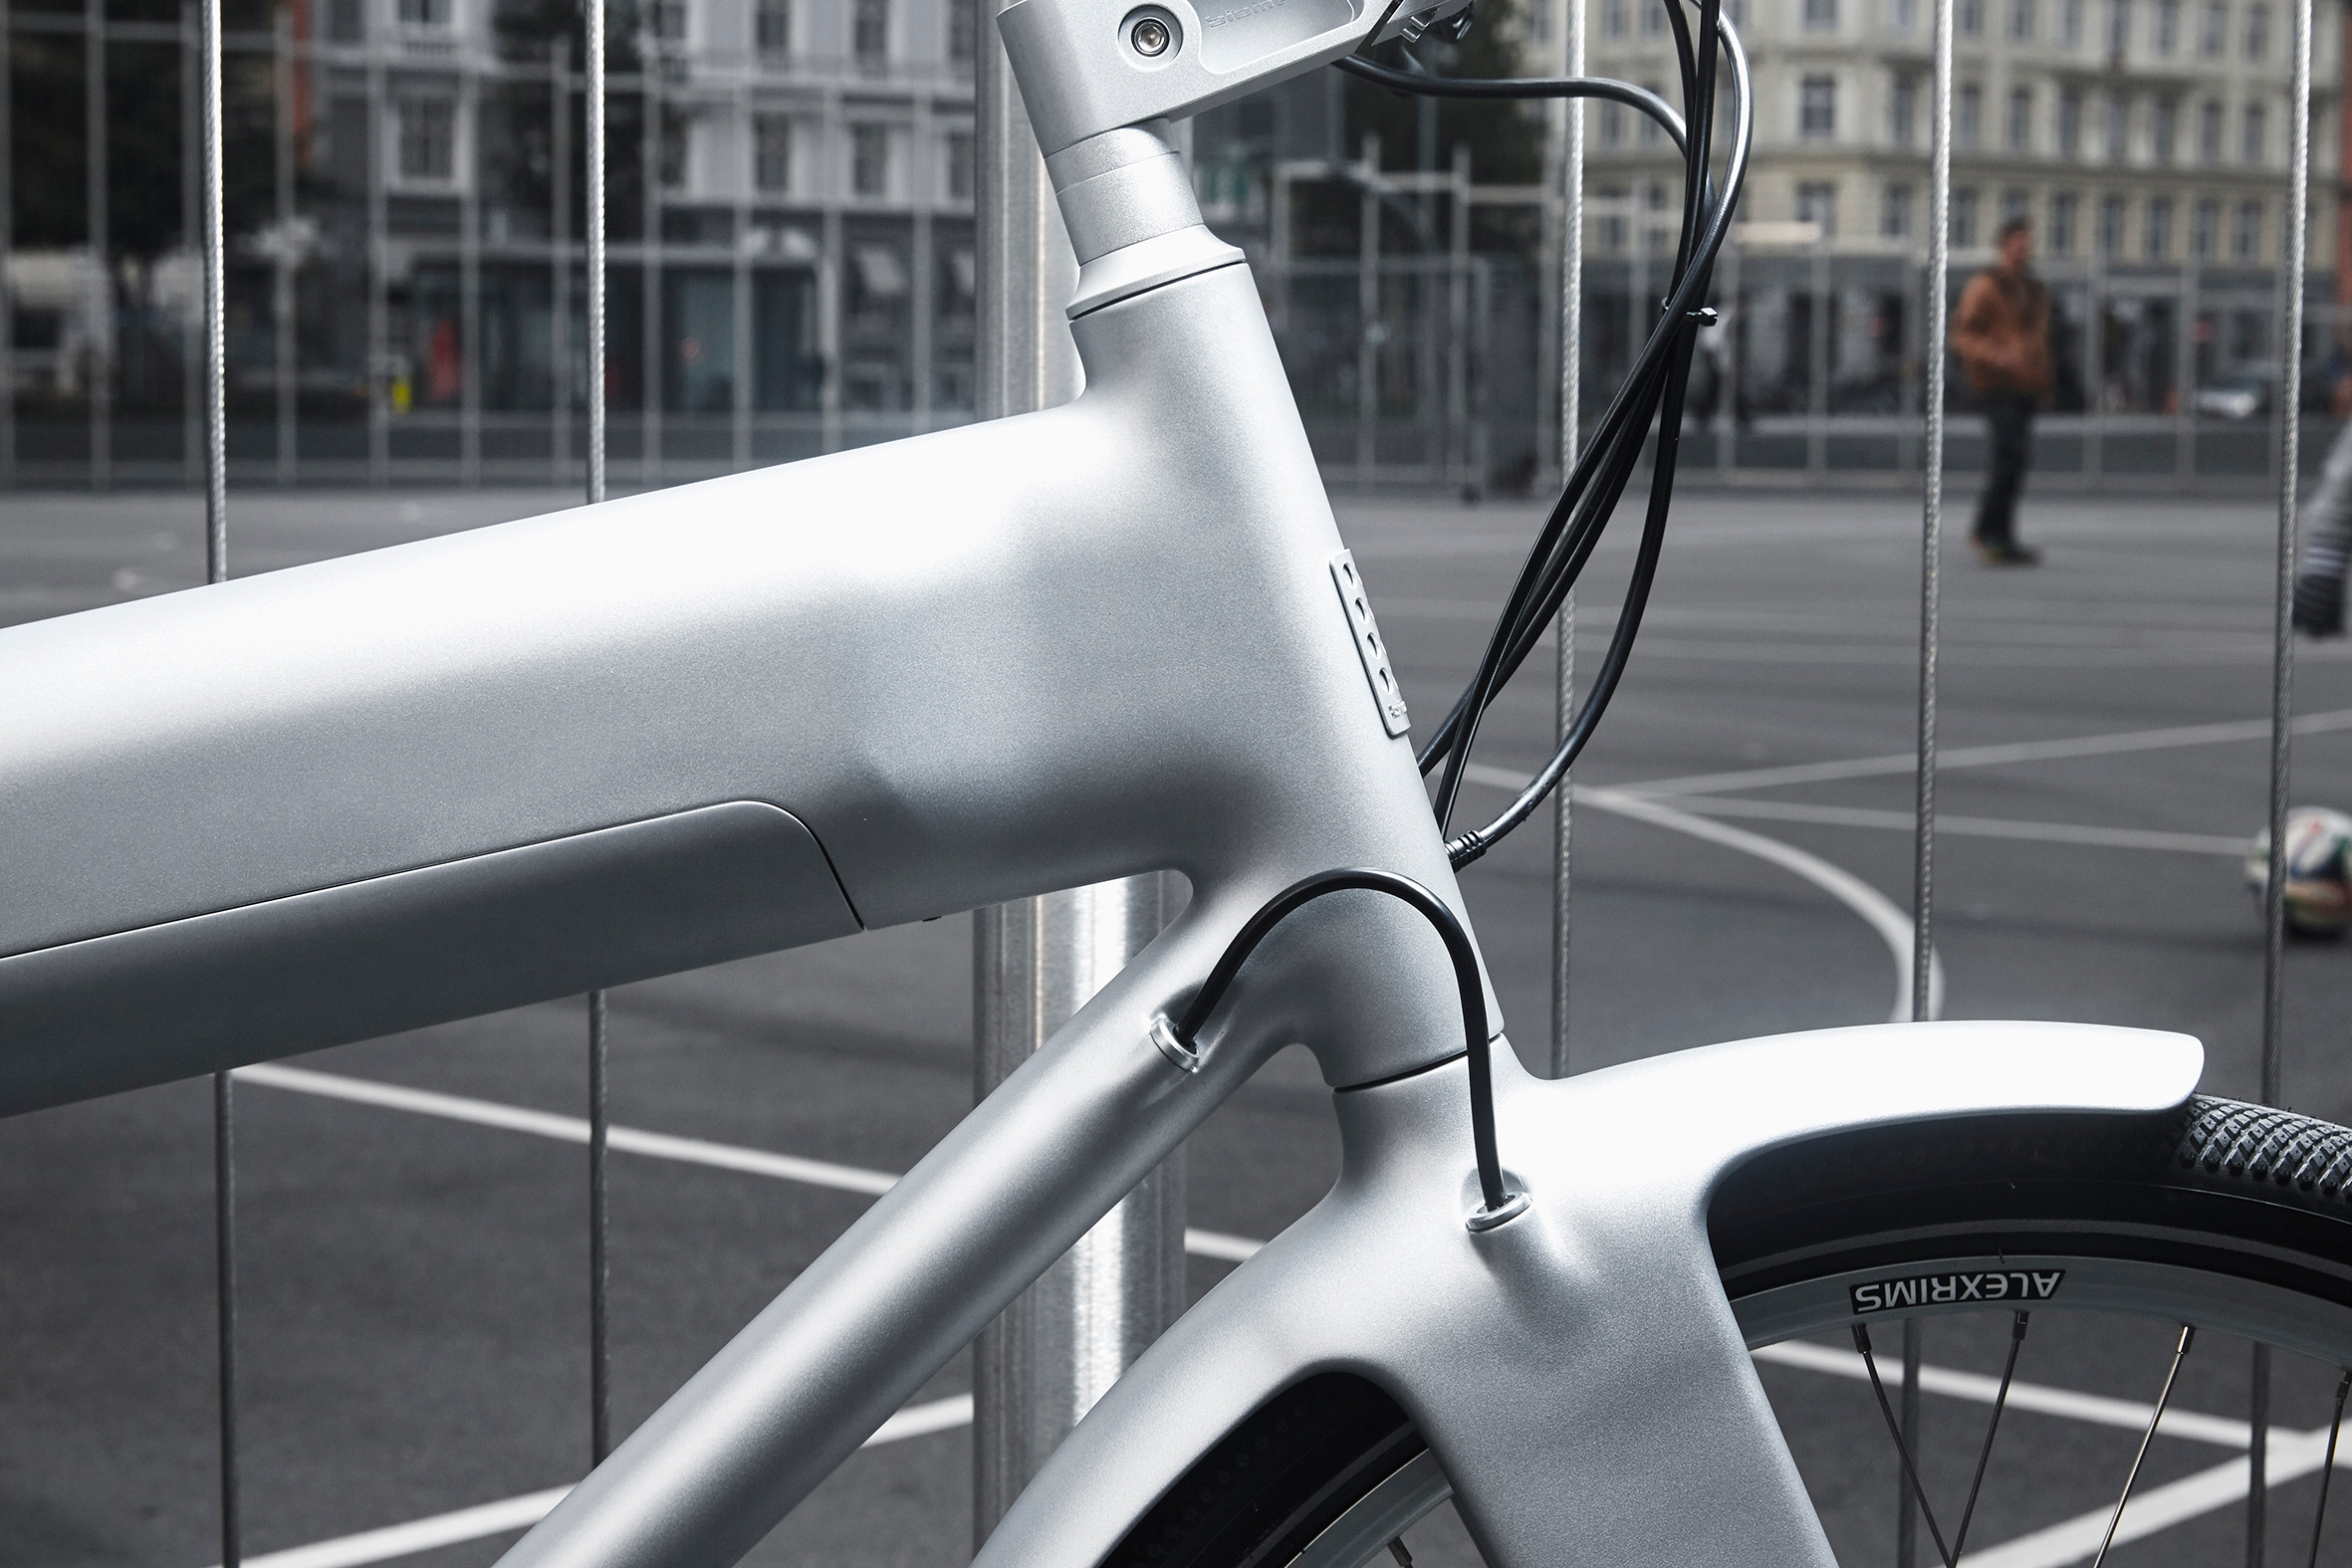 Introducing the Everlasting Bicycle Frame